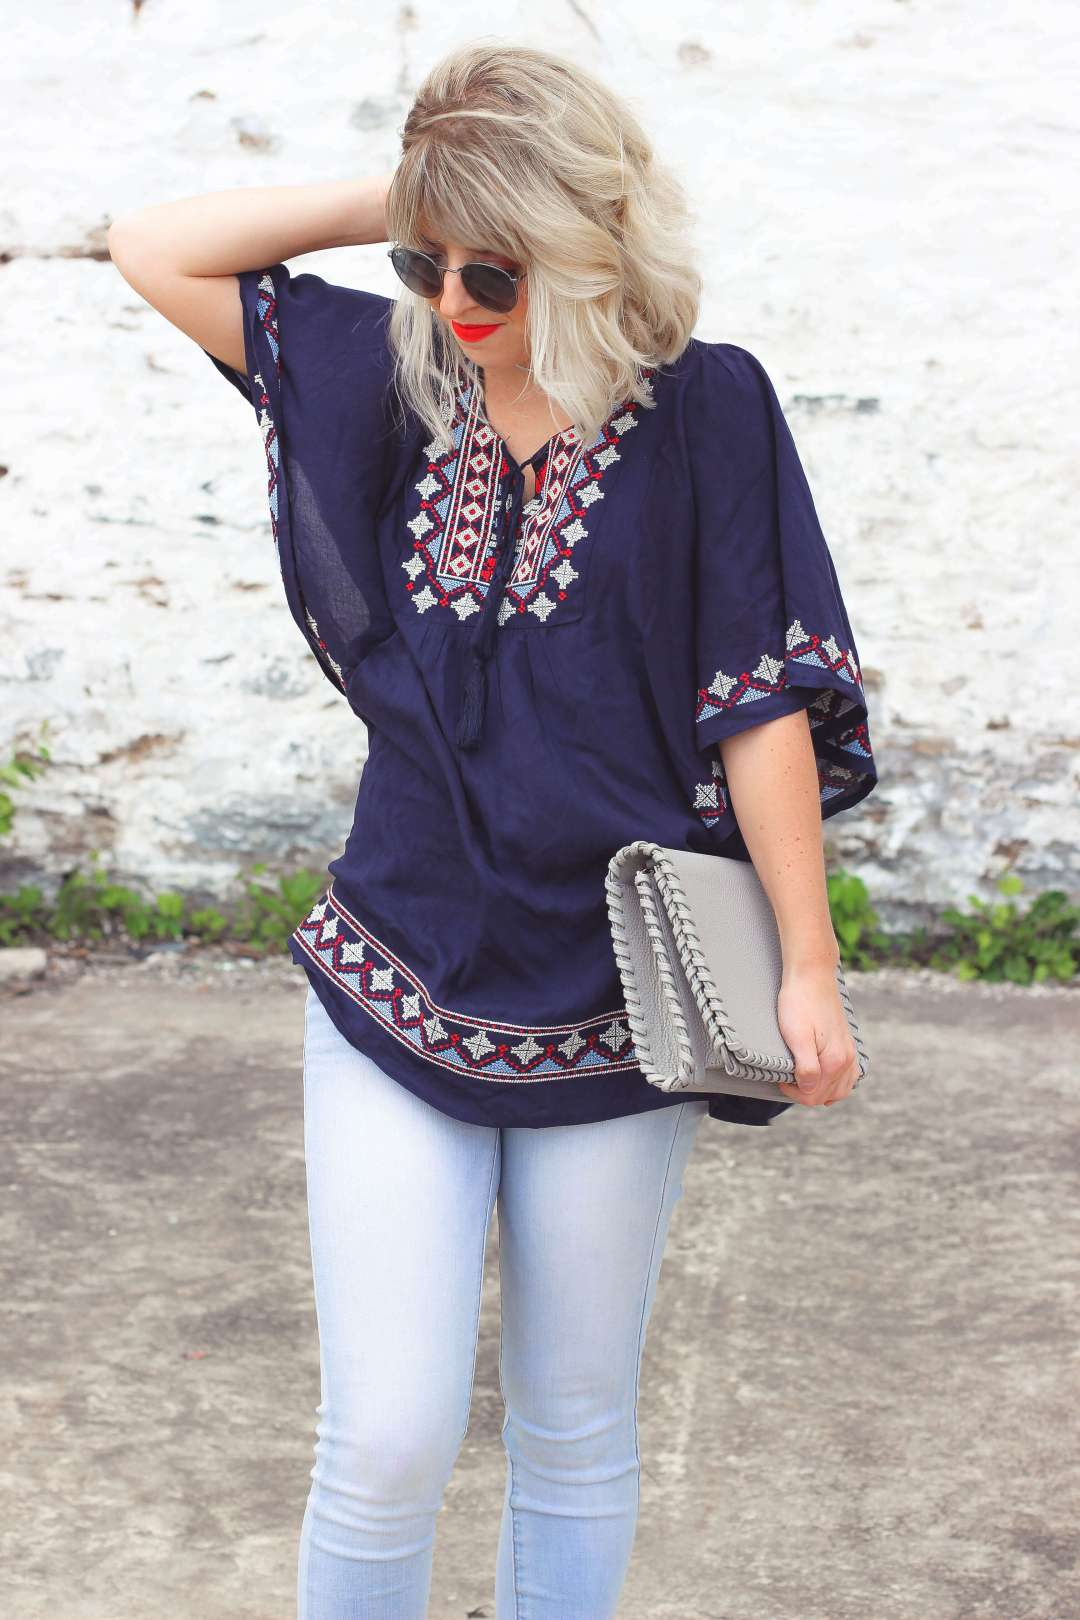 4th Of July Outfits For Every Occassion